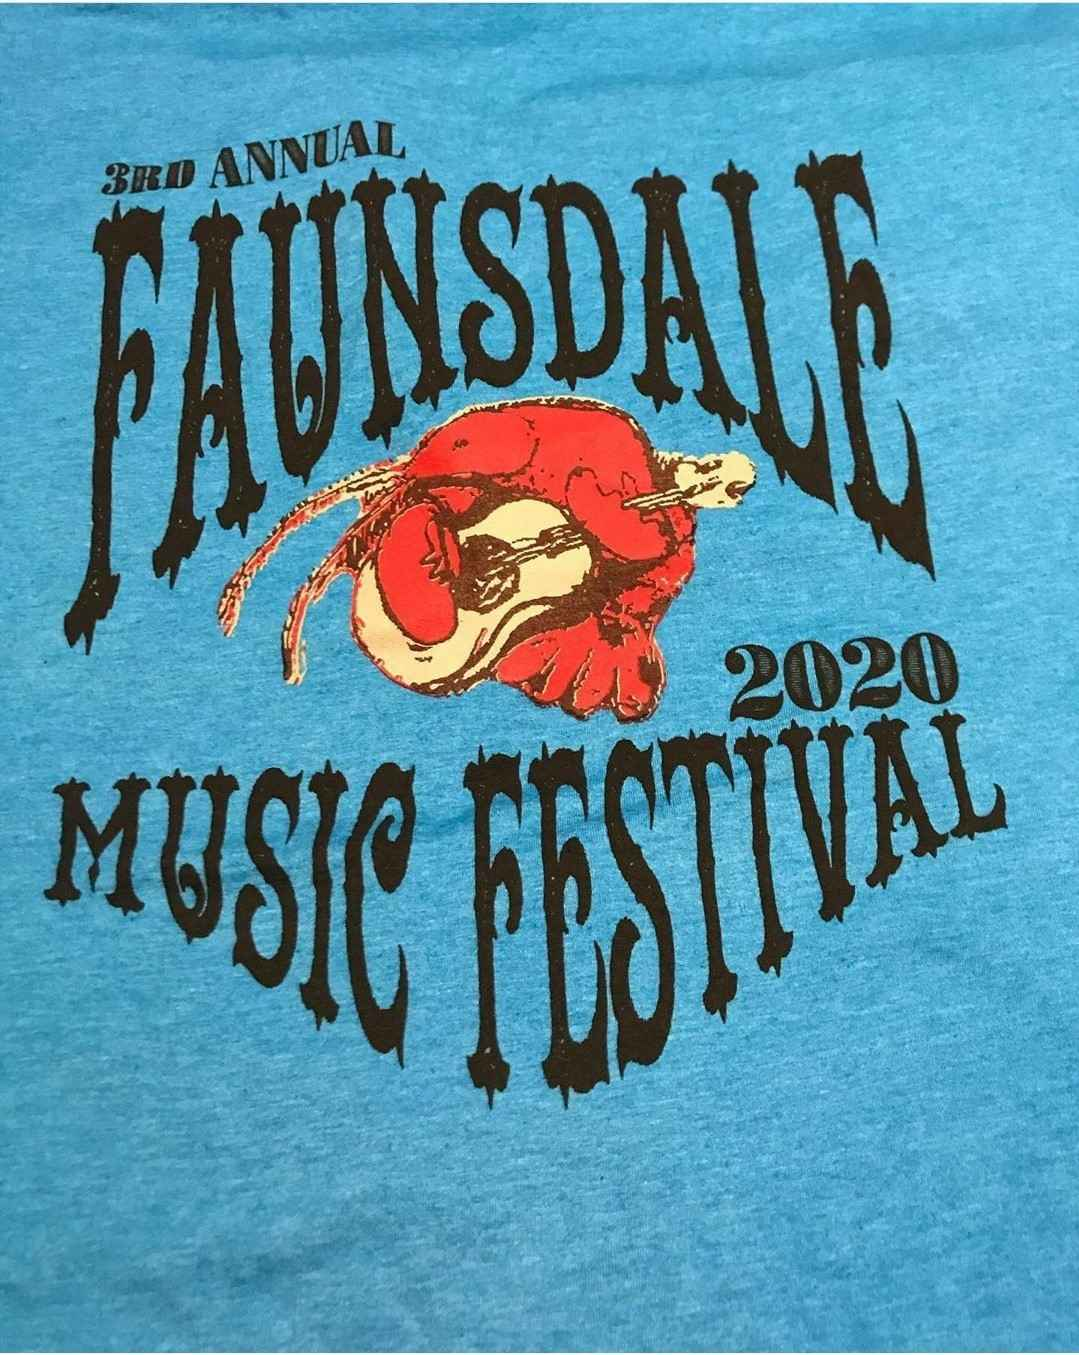 Buy the New Faunsdale Music Festival 2020 (Corona No-Go!) T-Shirt or the Community Center T-Shirt image